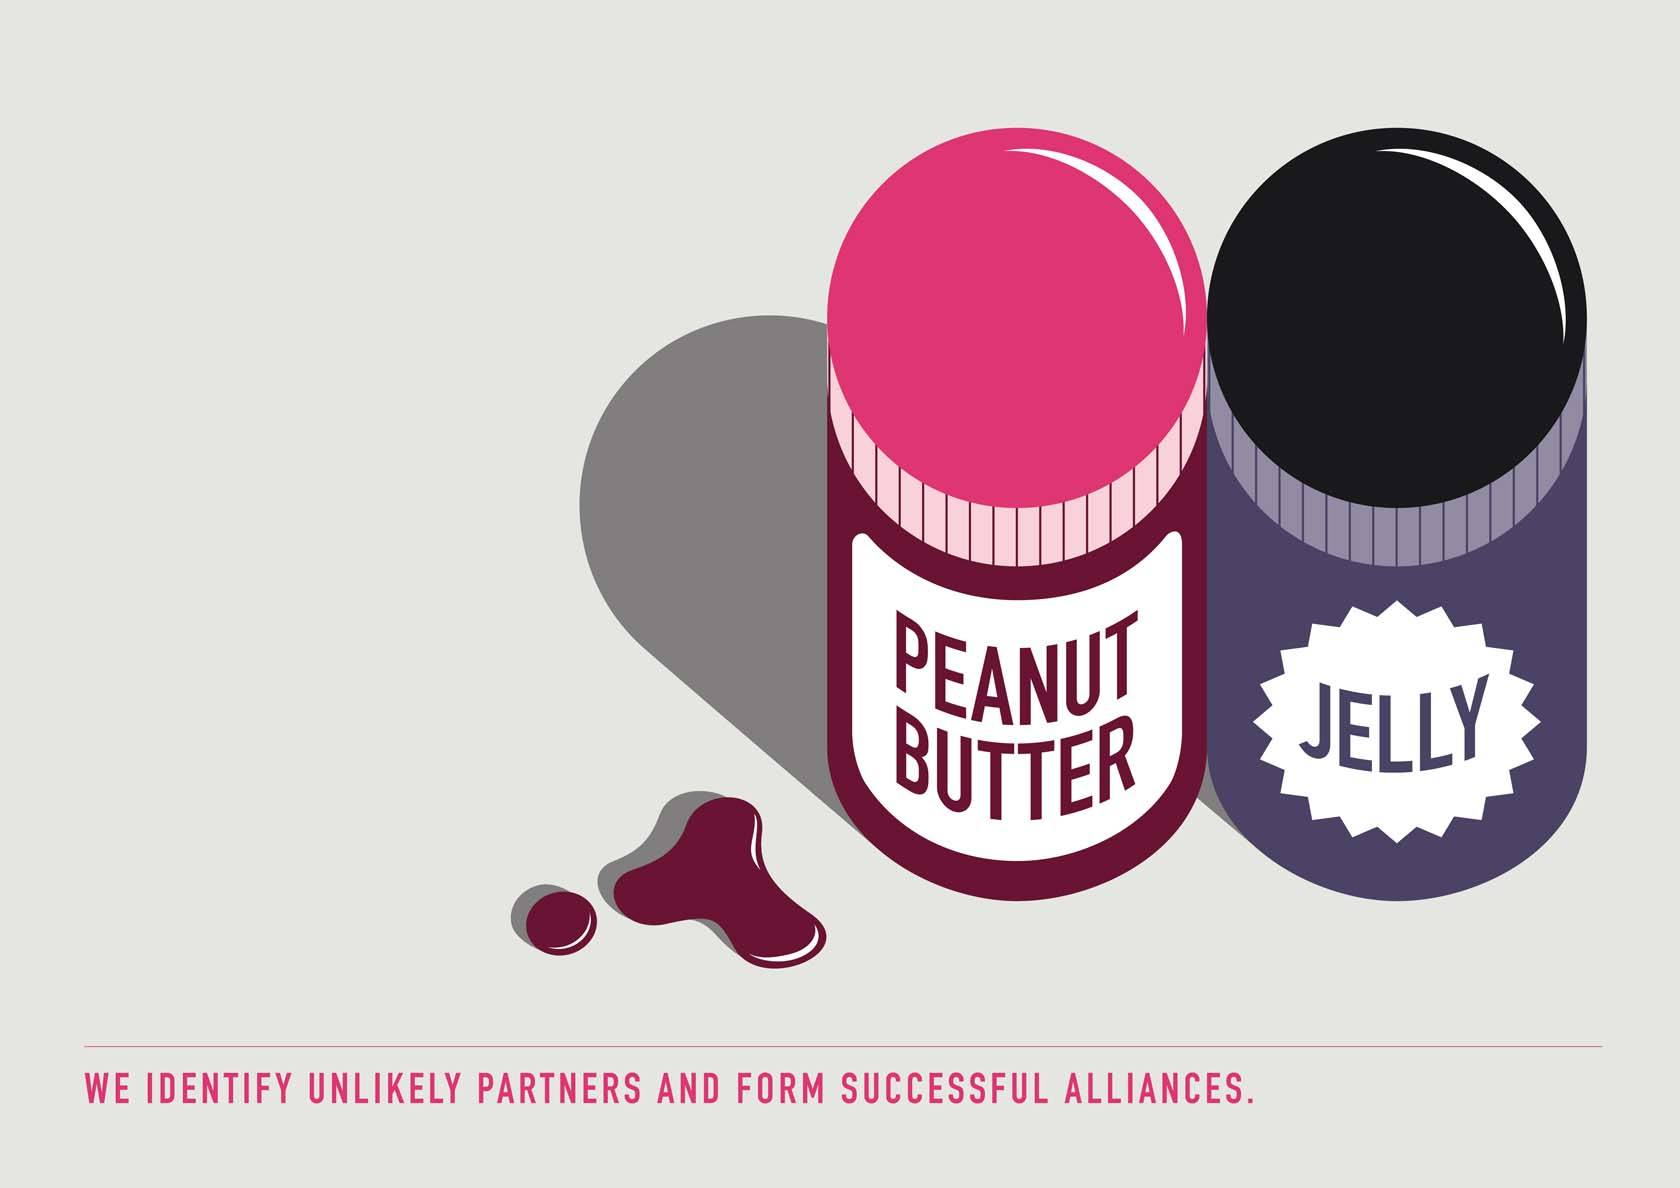 RCS_PEANUT_JELLY_ILLUSTRATION_WMH image